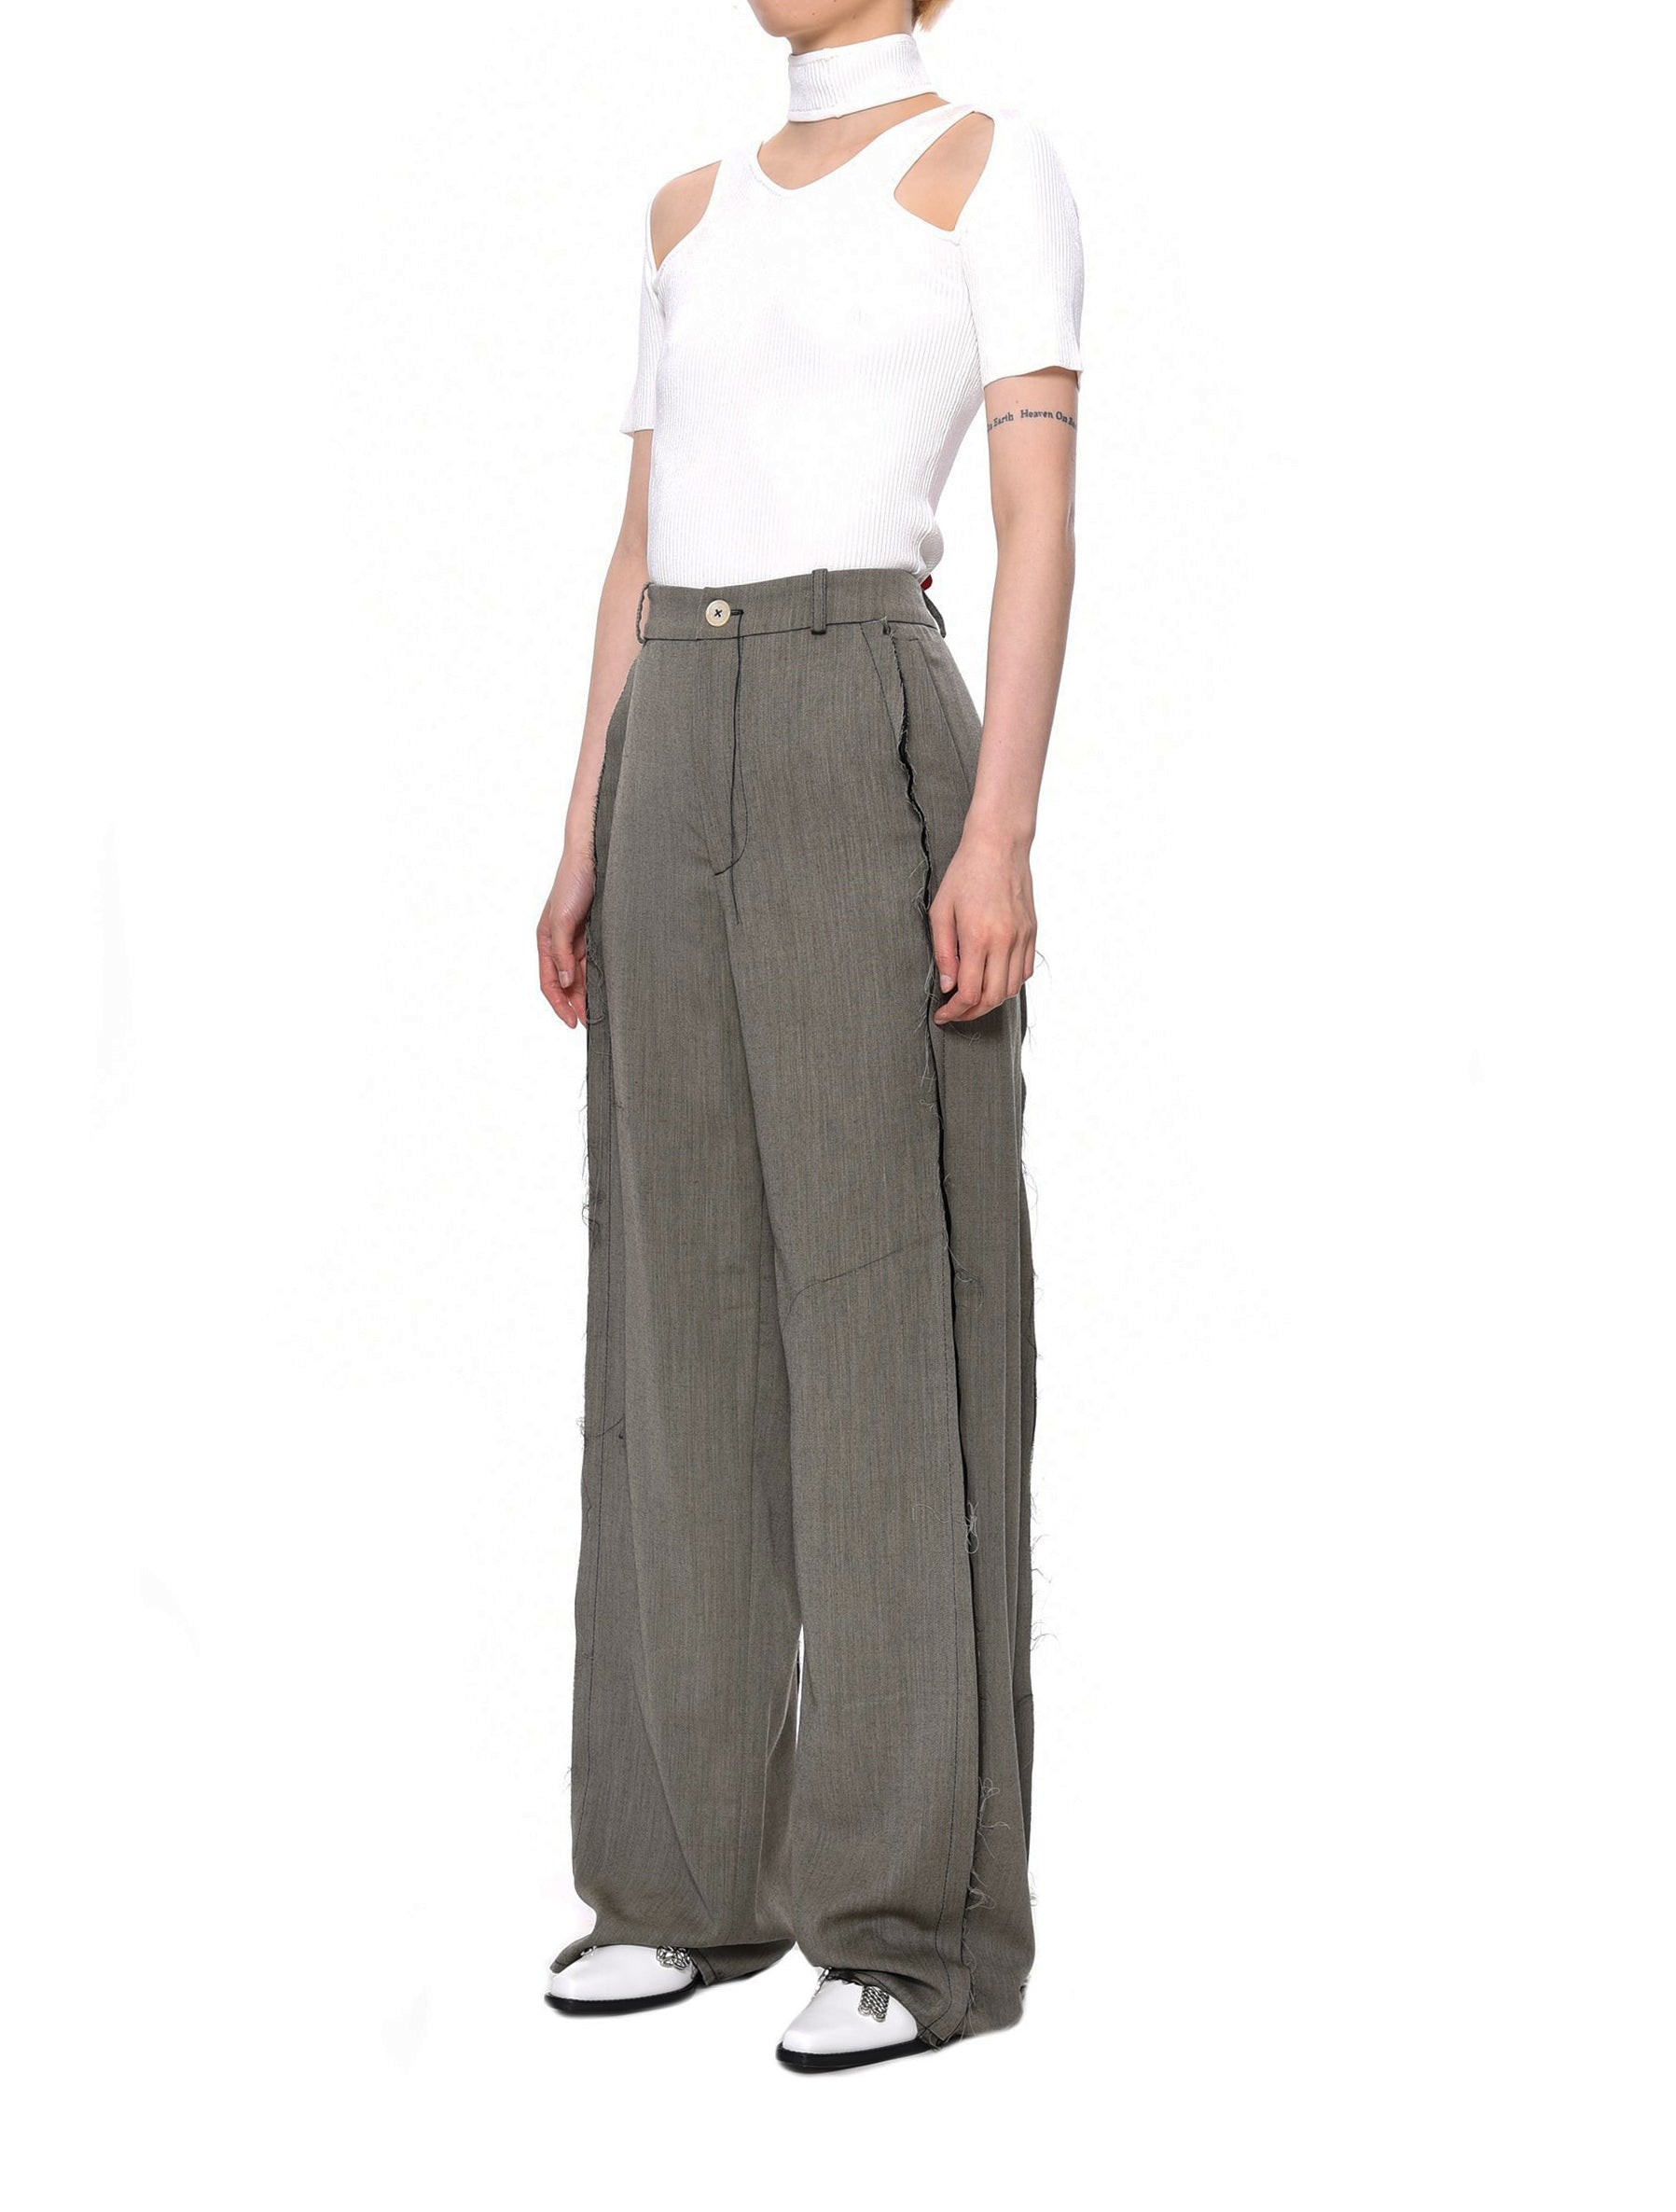 Ninamounah Pasque Raw Edge Suit Trousers